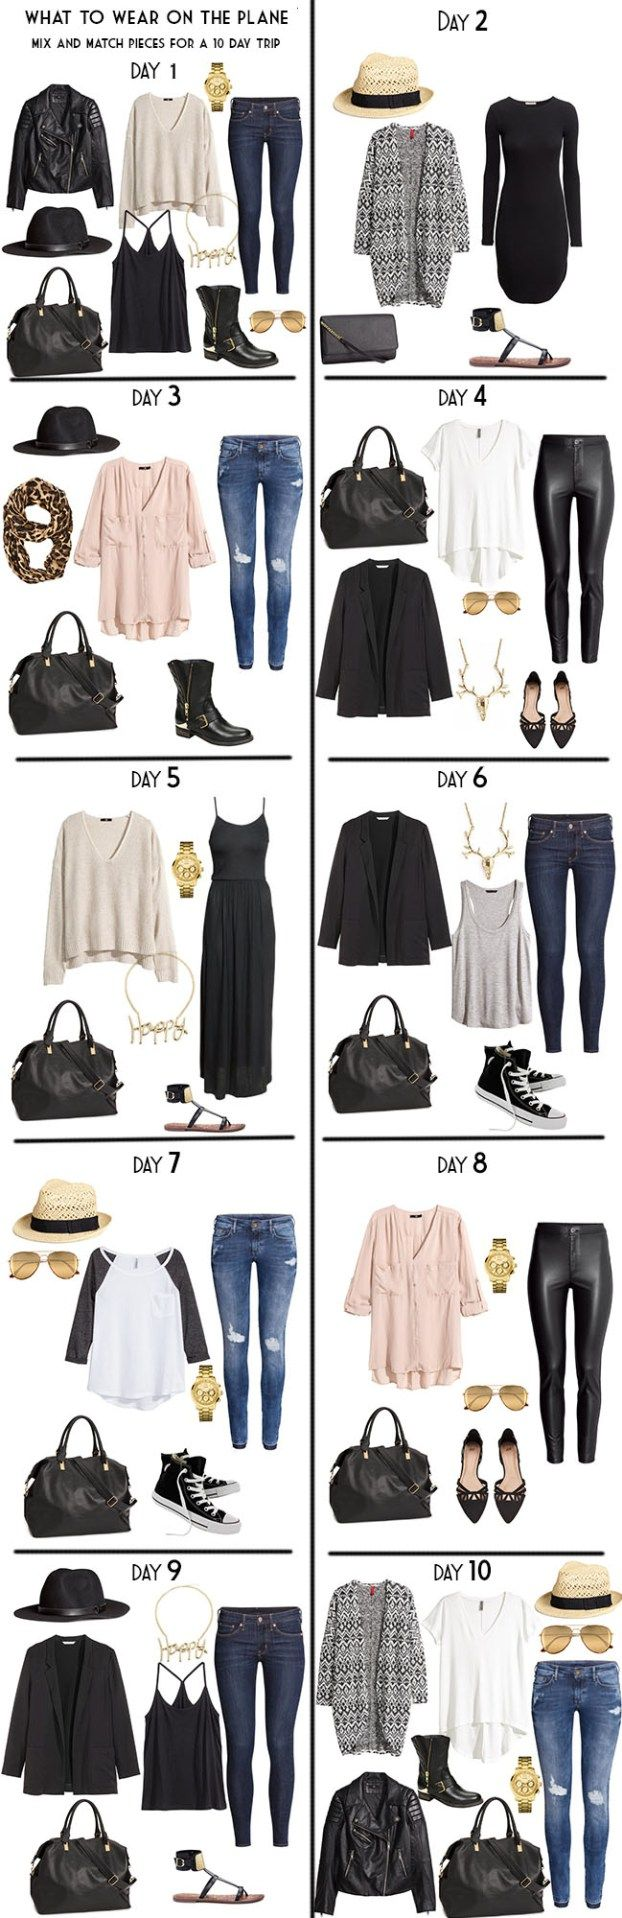 Packing List Day Outfits